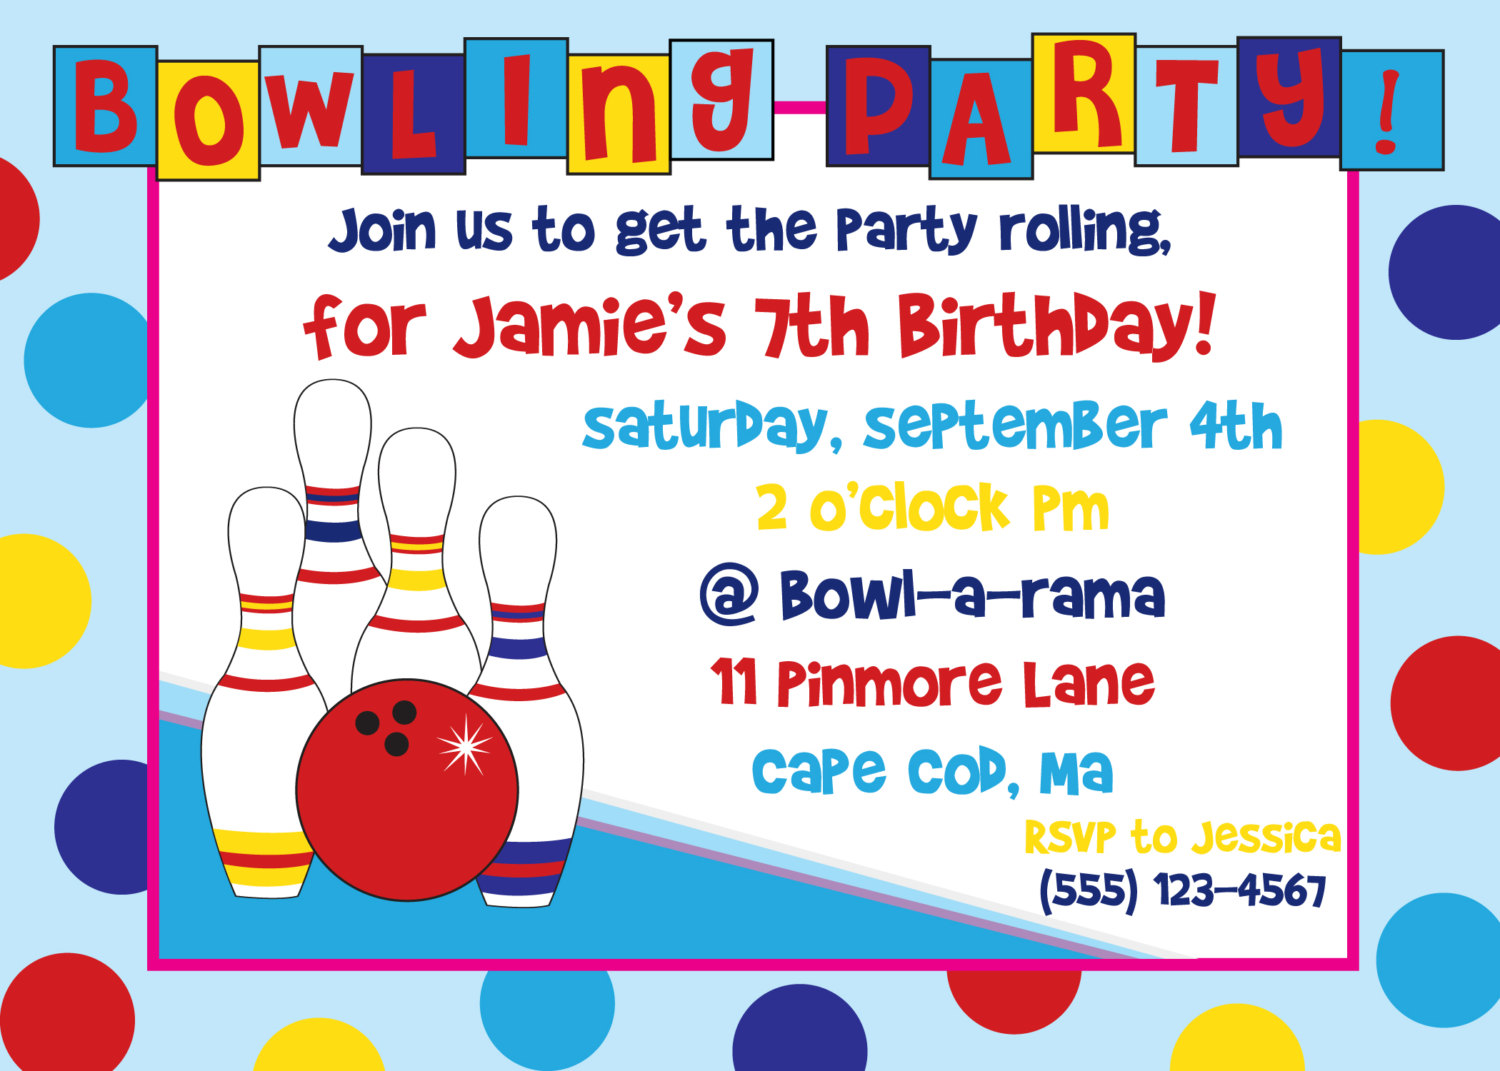 10th birthday invitation templates free ; 1a0a9193e1ed627a628e90c29b7fecd5